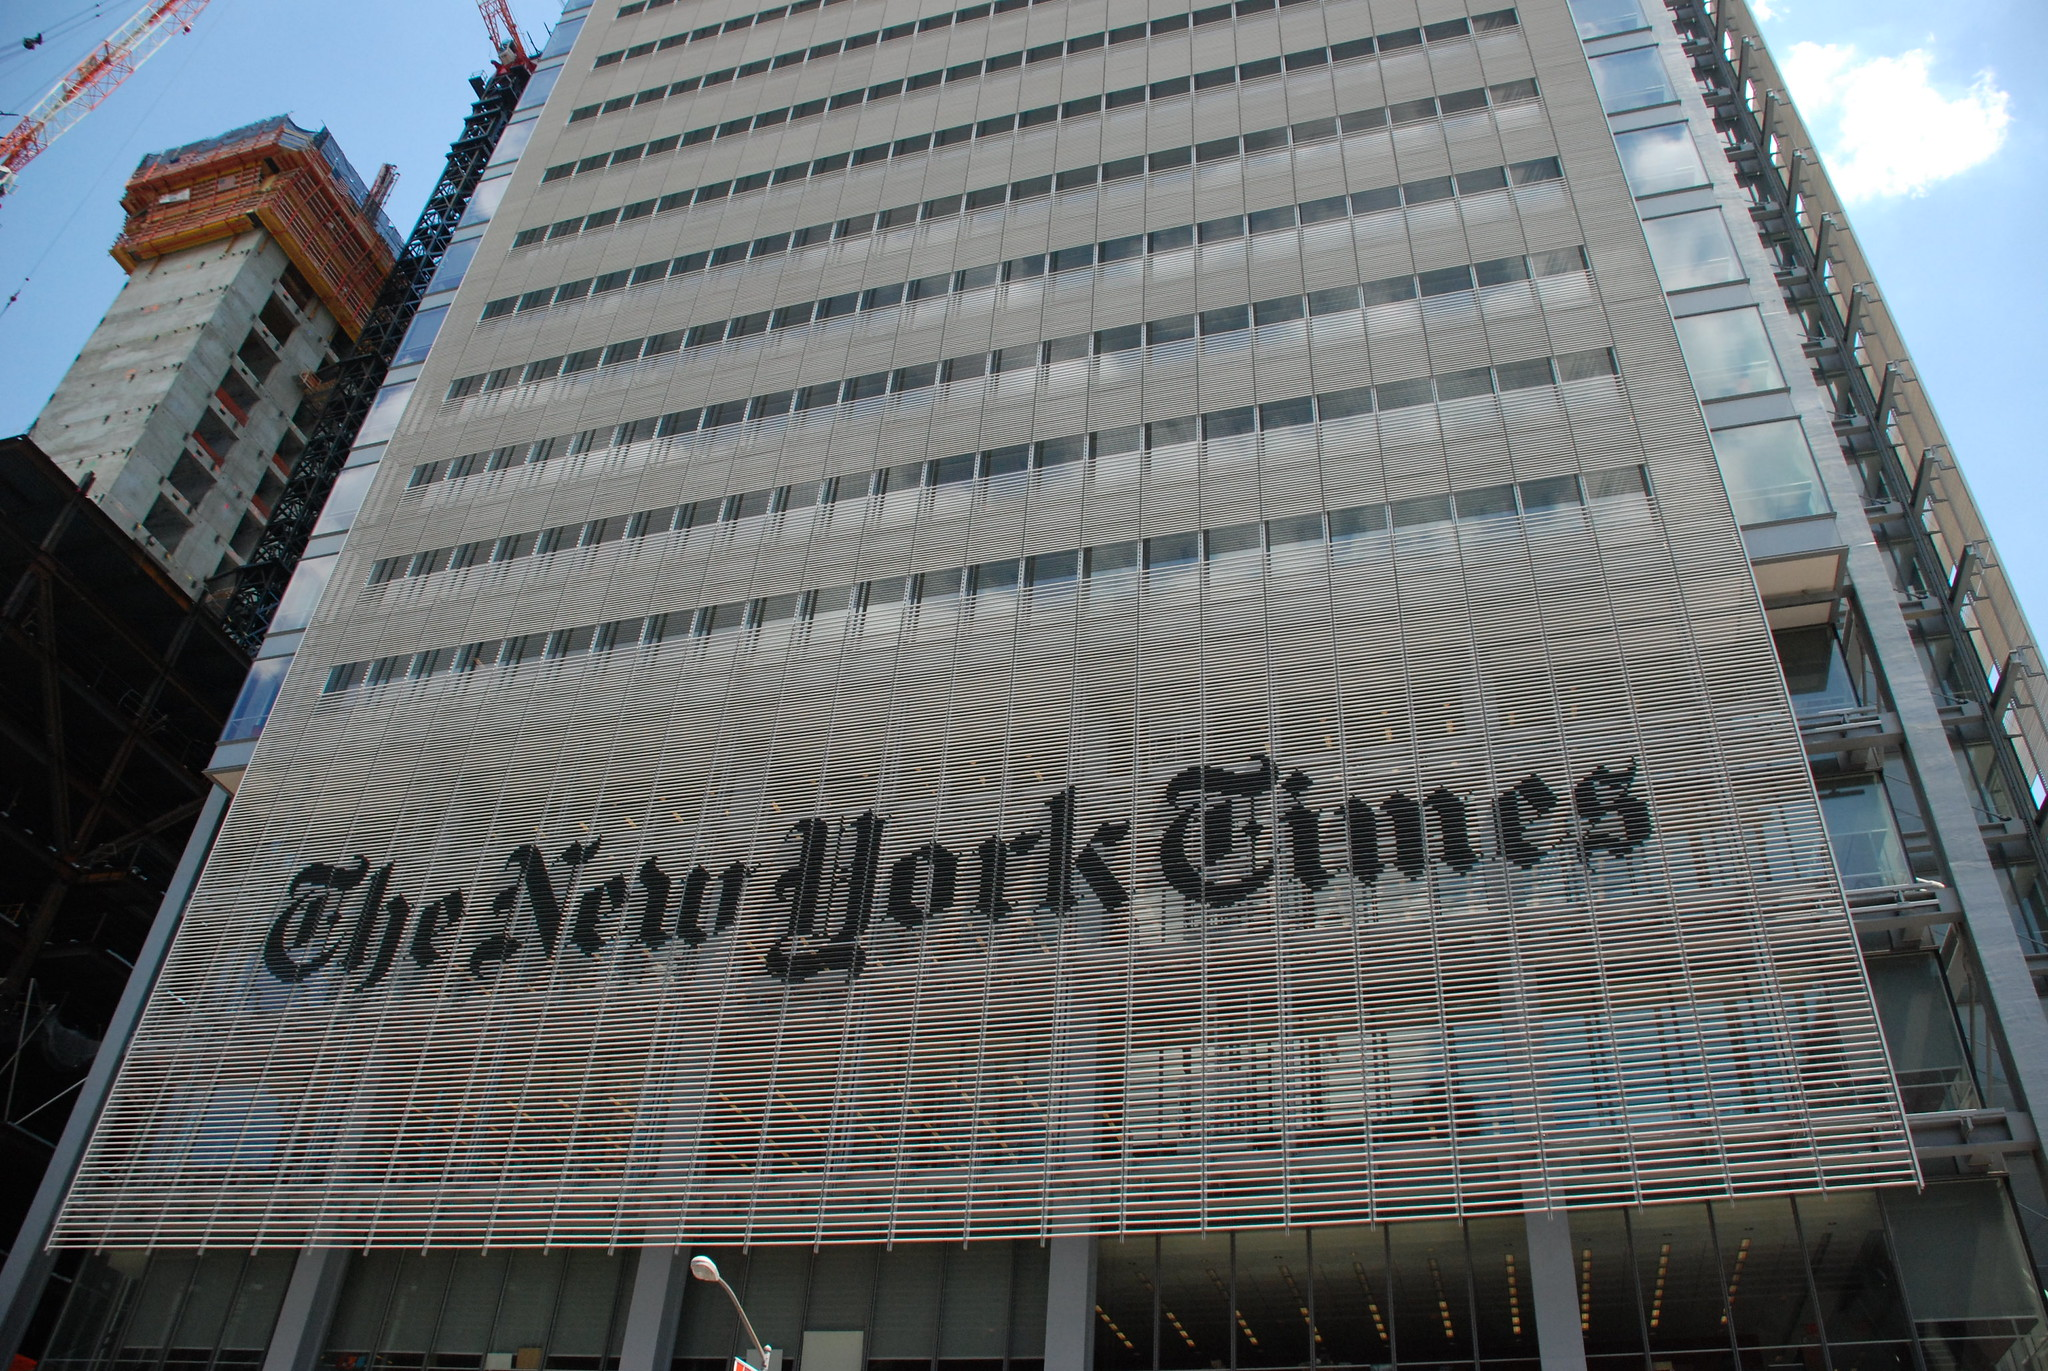 The New York Times disappears their own coverage of Biden and Tara Reade